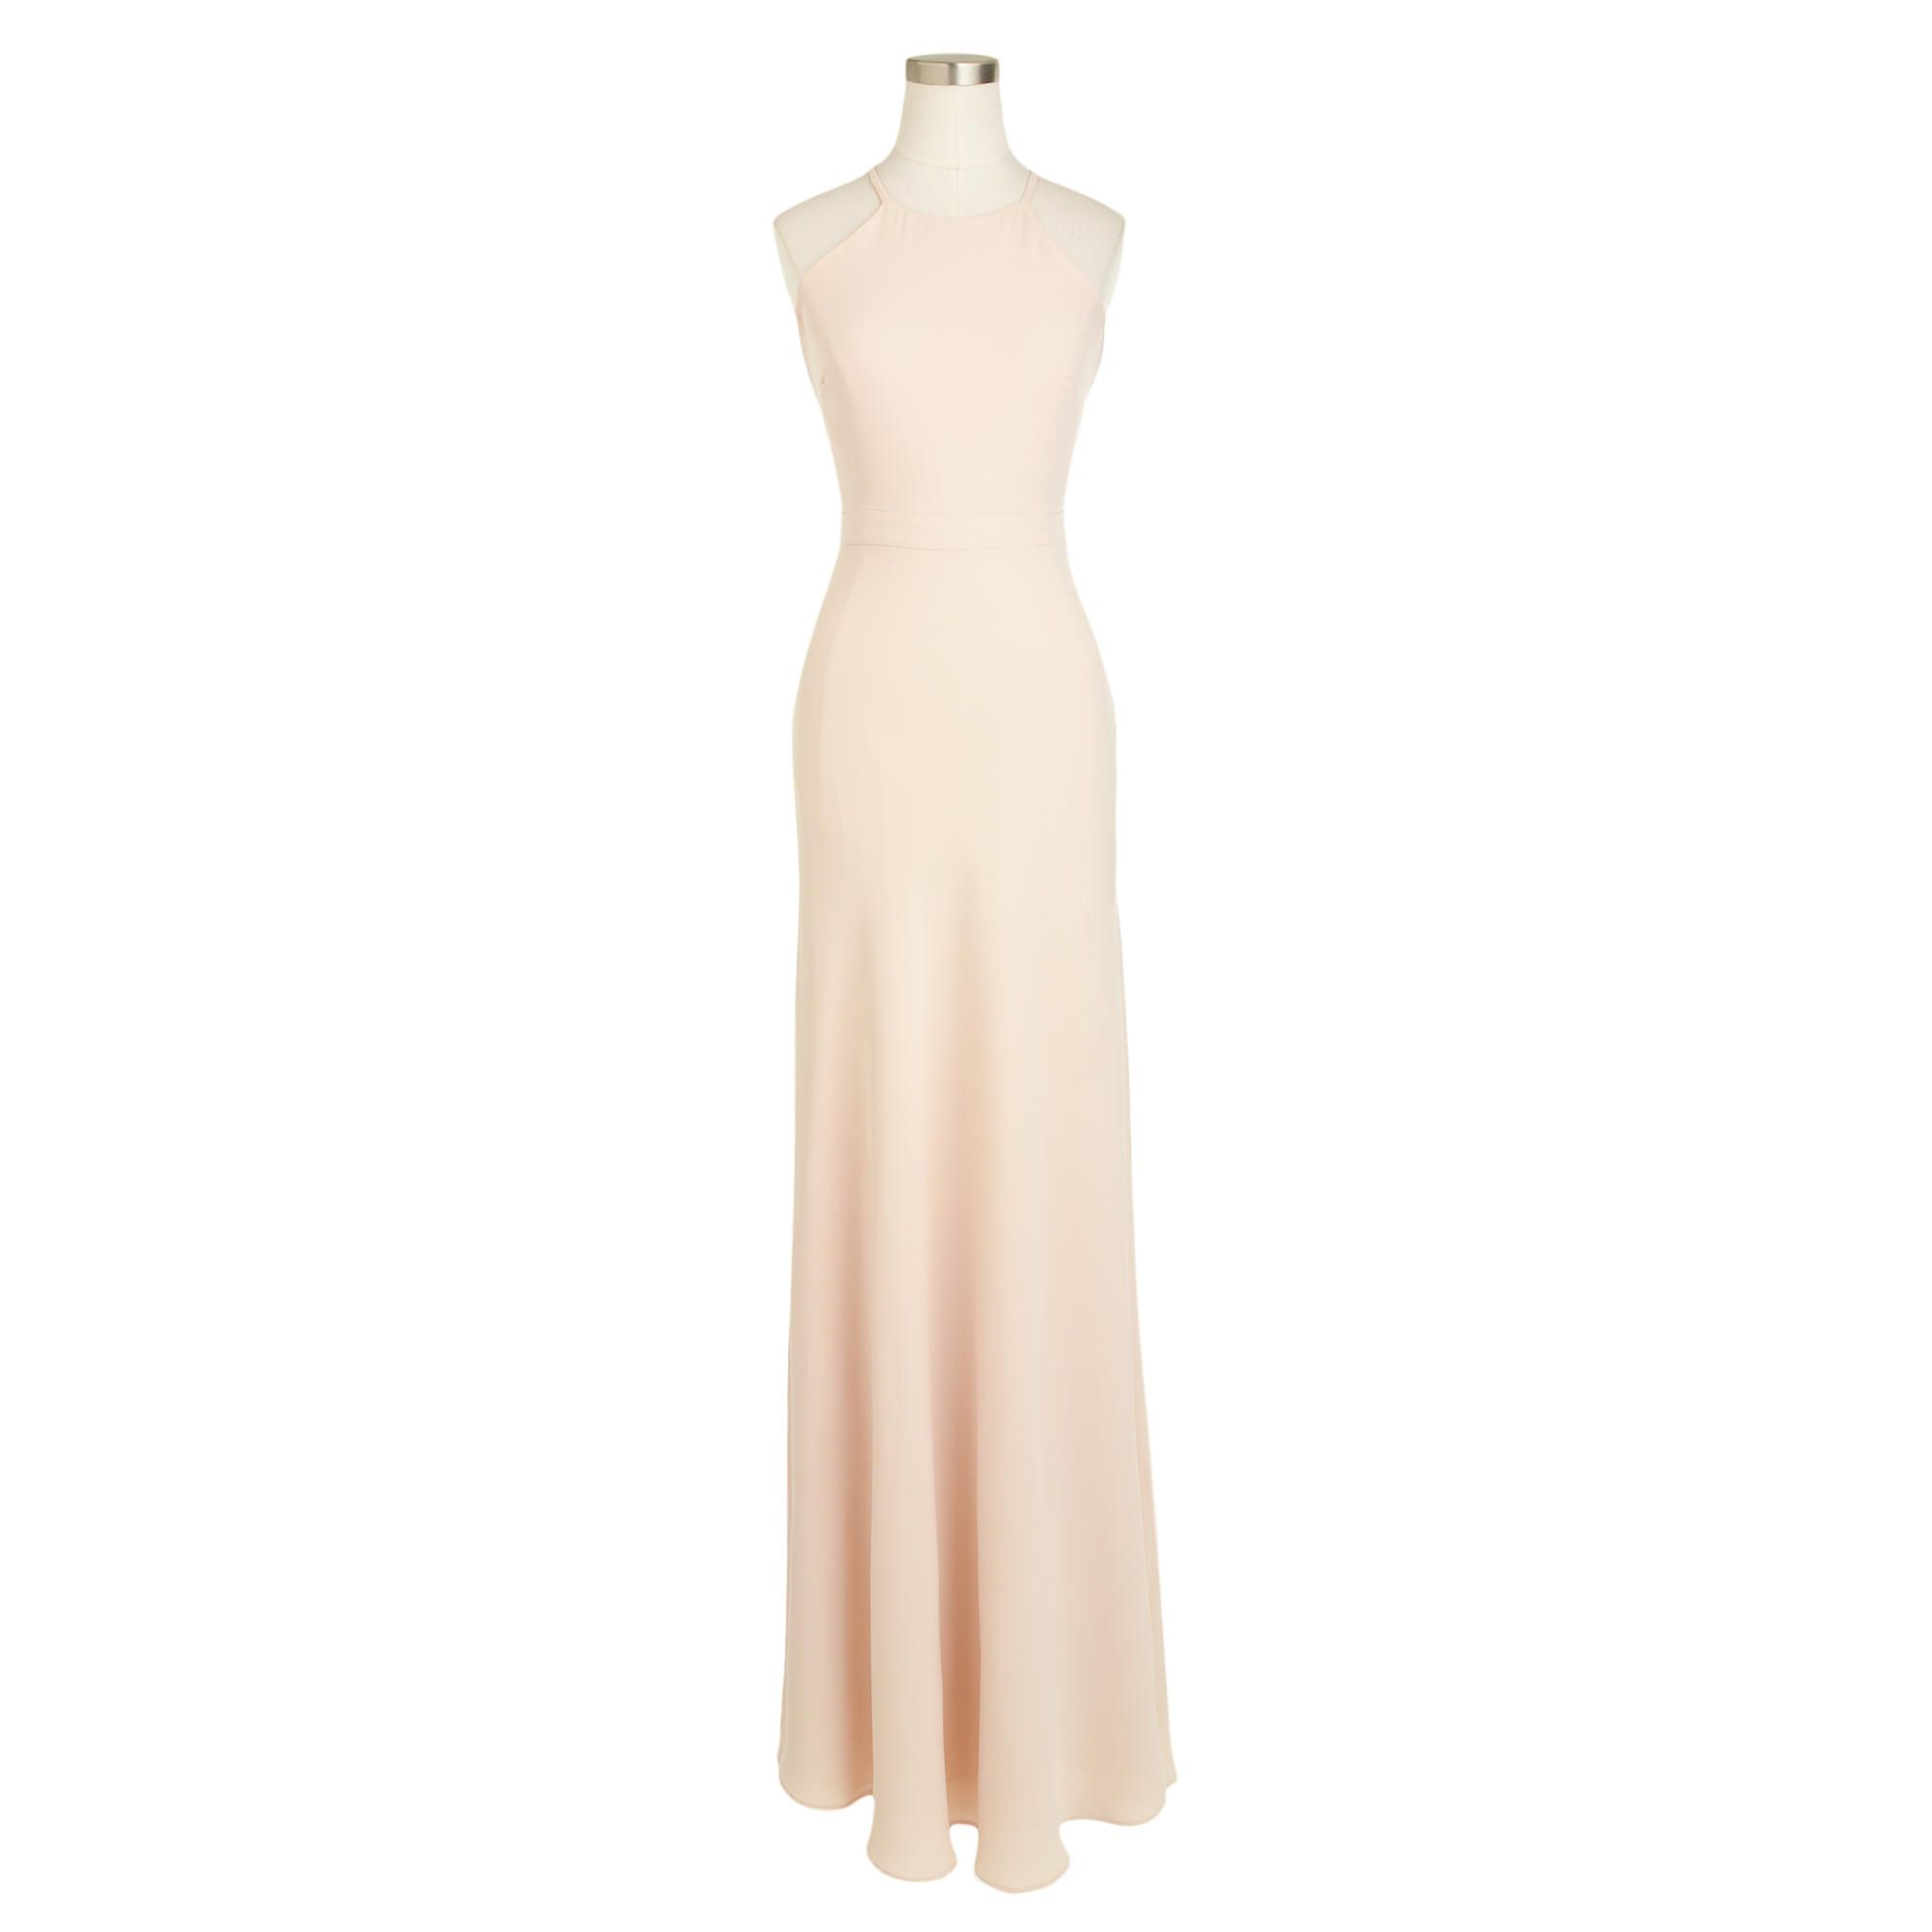 Beniciacurtis this would be stunning on you carly long dress in